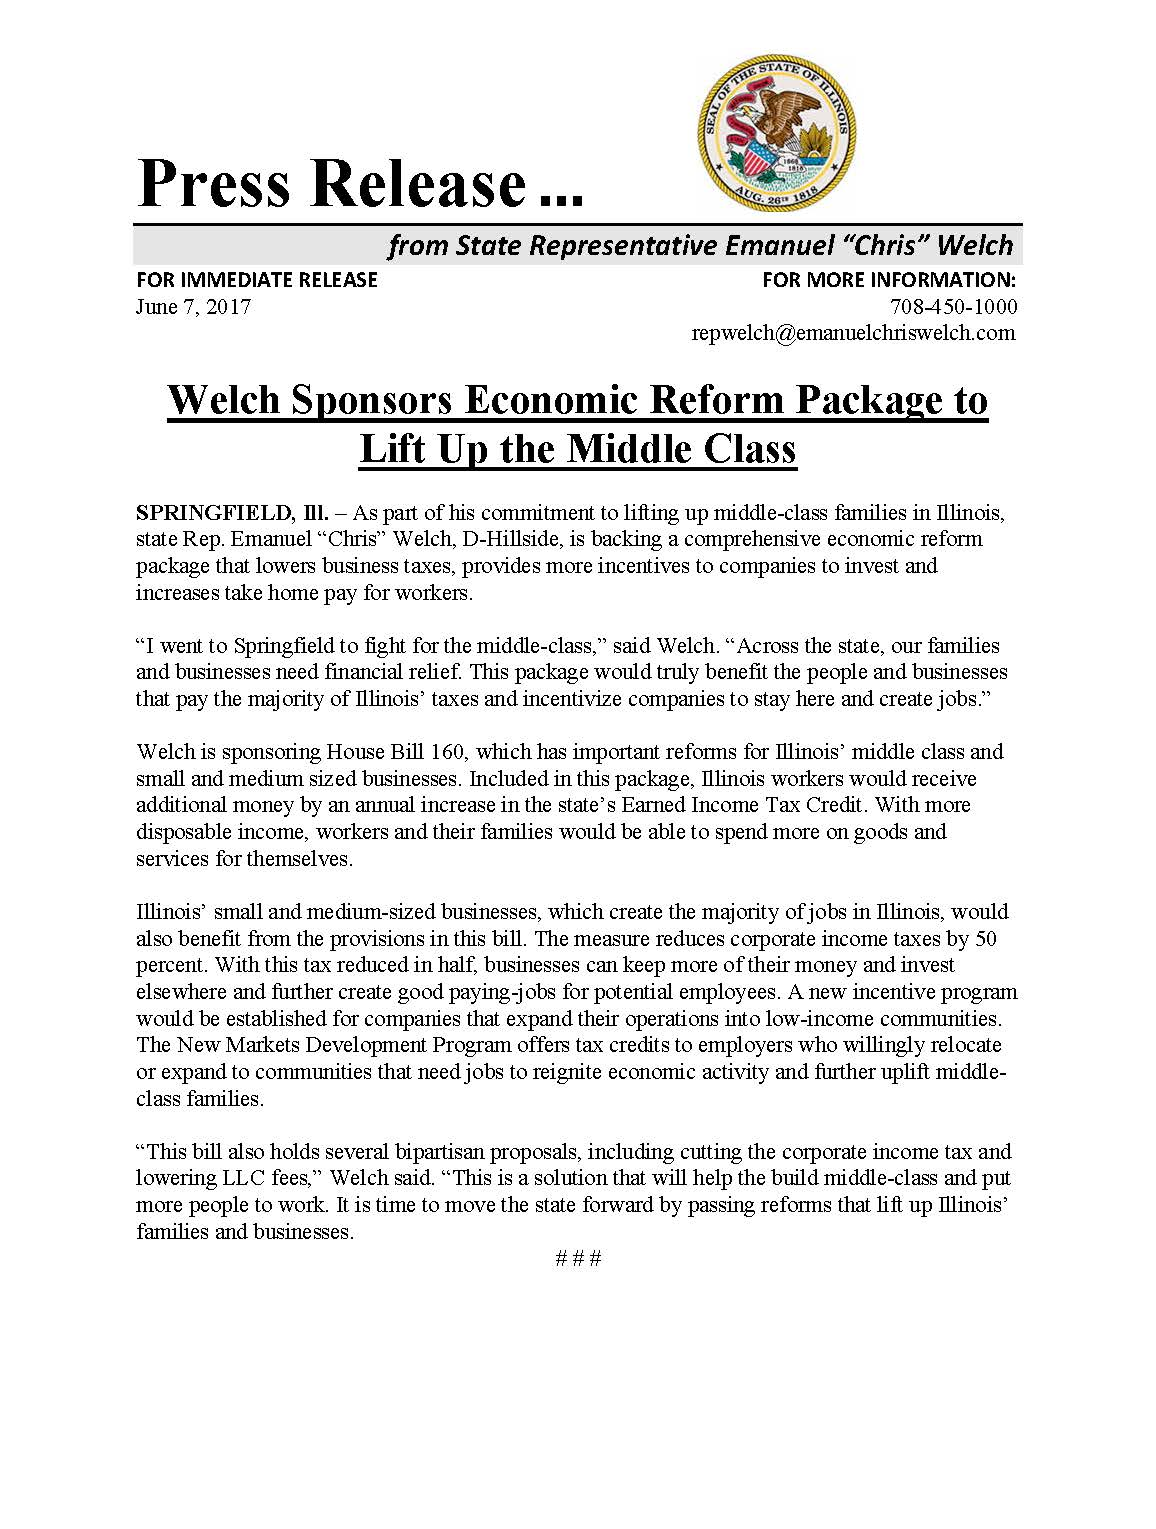 Welch Sponsors Economic Reform Package to Lift Up the Middle Class  (June 7, 2017)